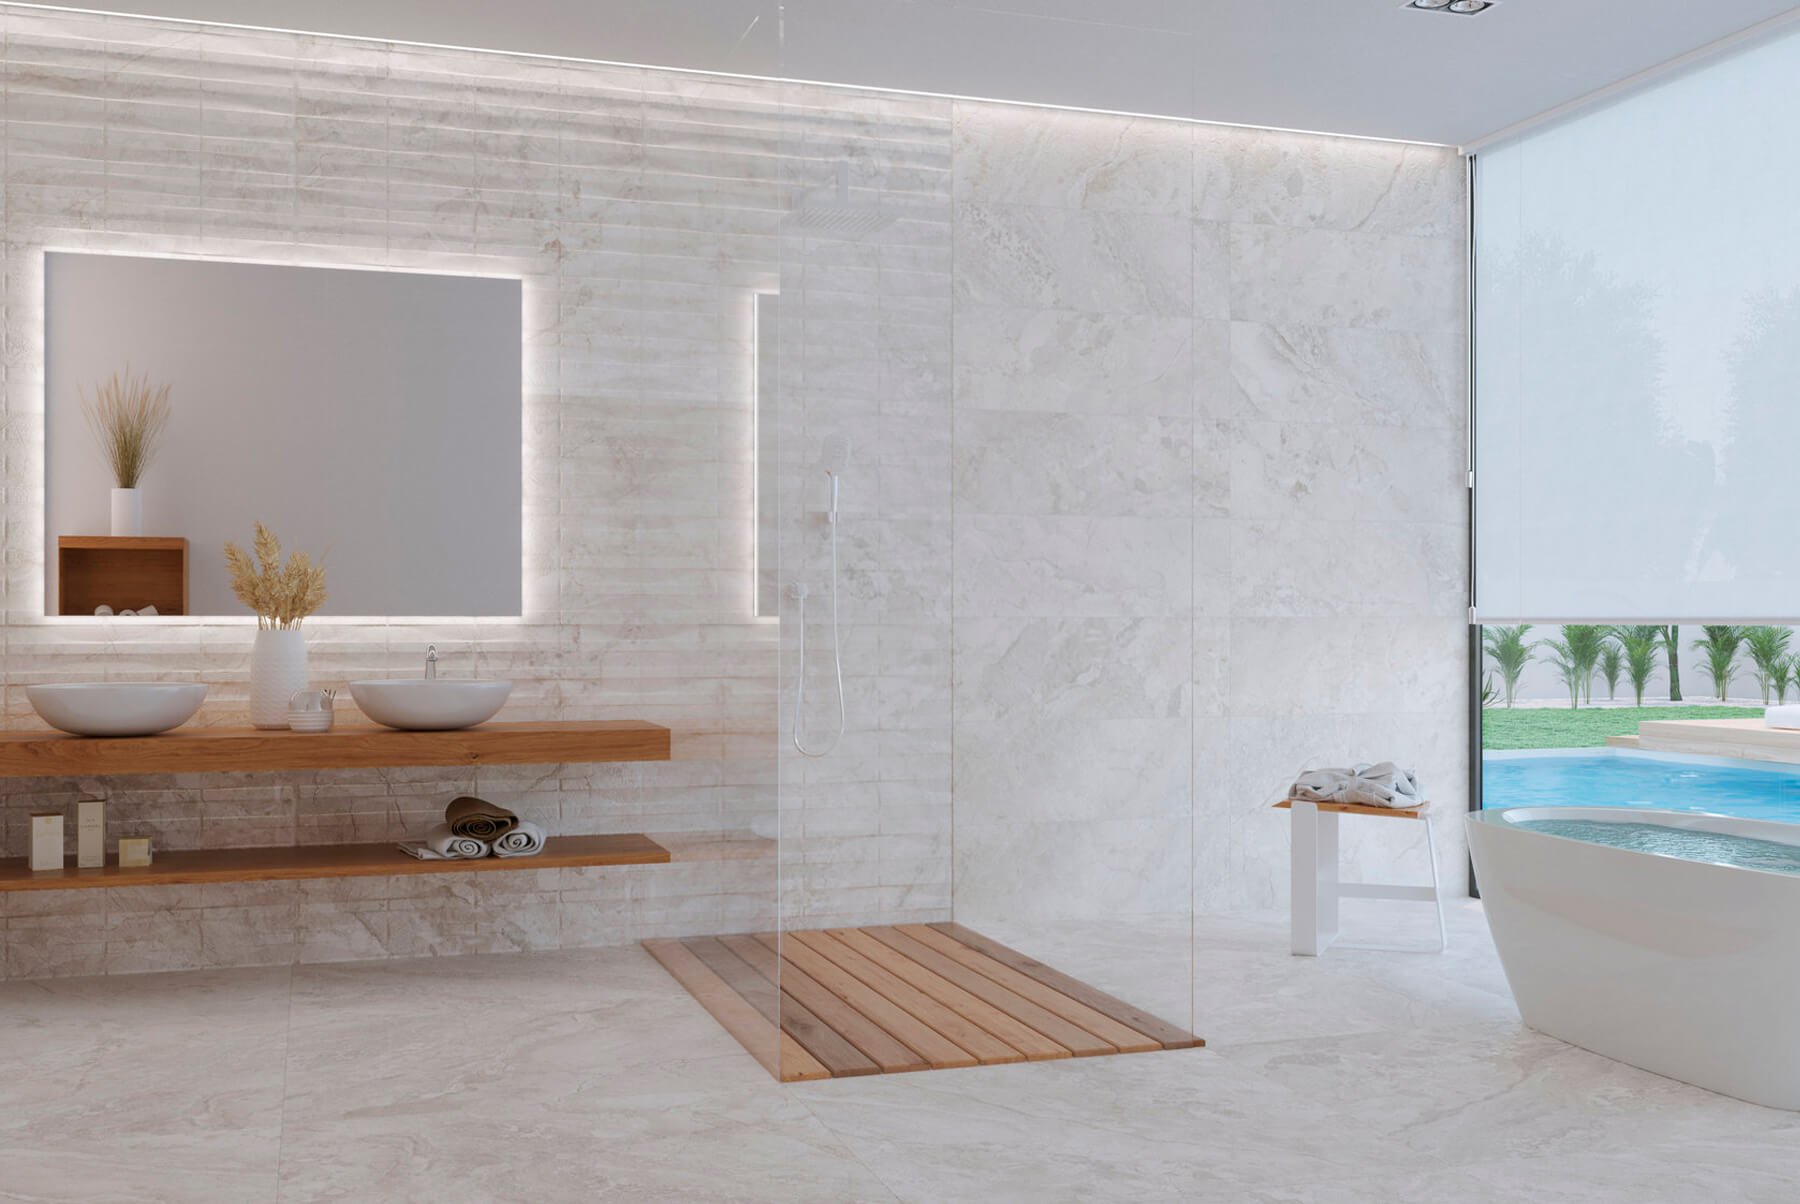 TILES-DREAMY-MARBLE-INSET-1-1800x1204